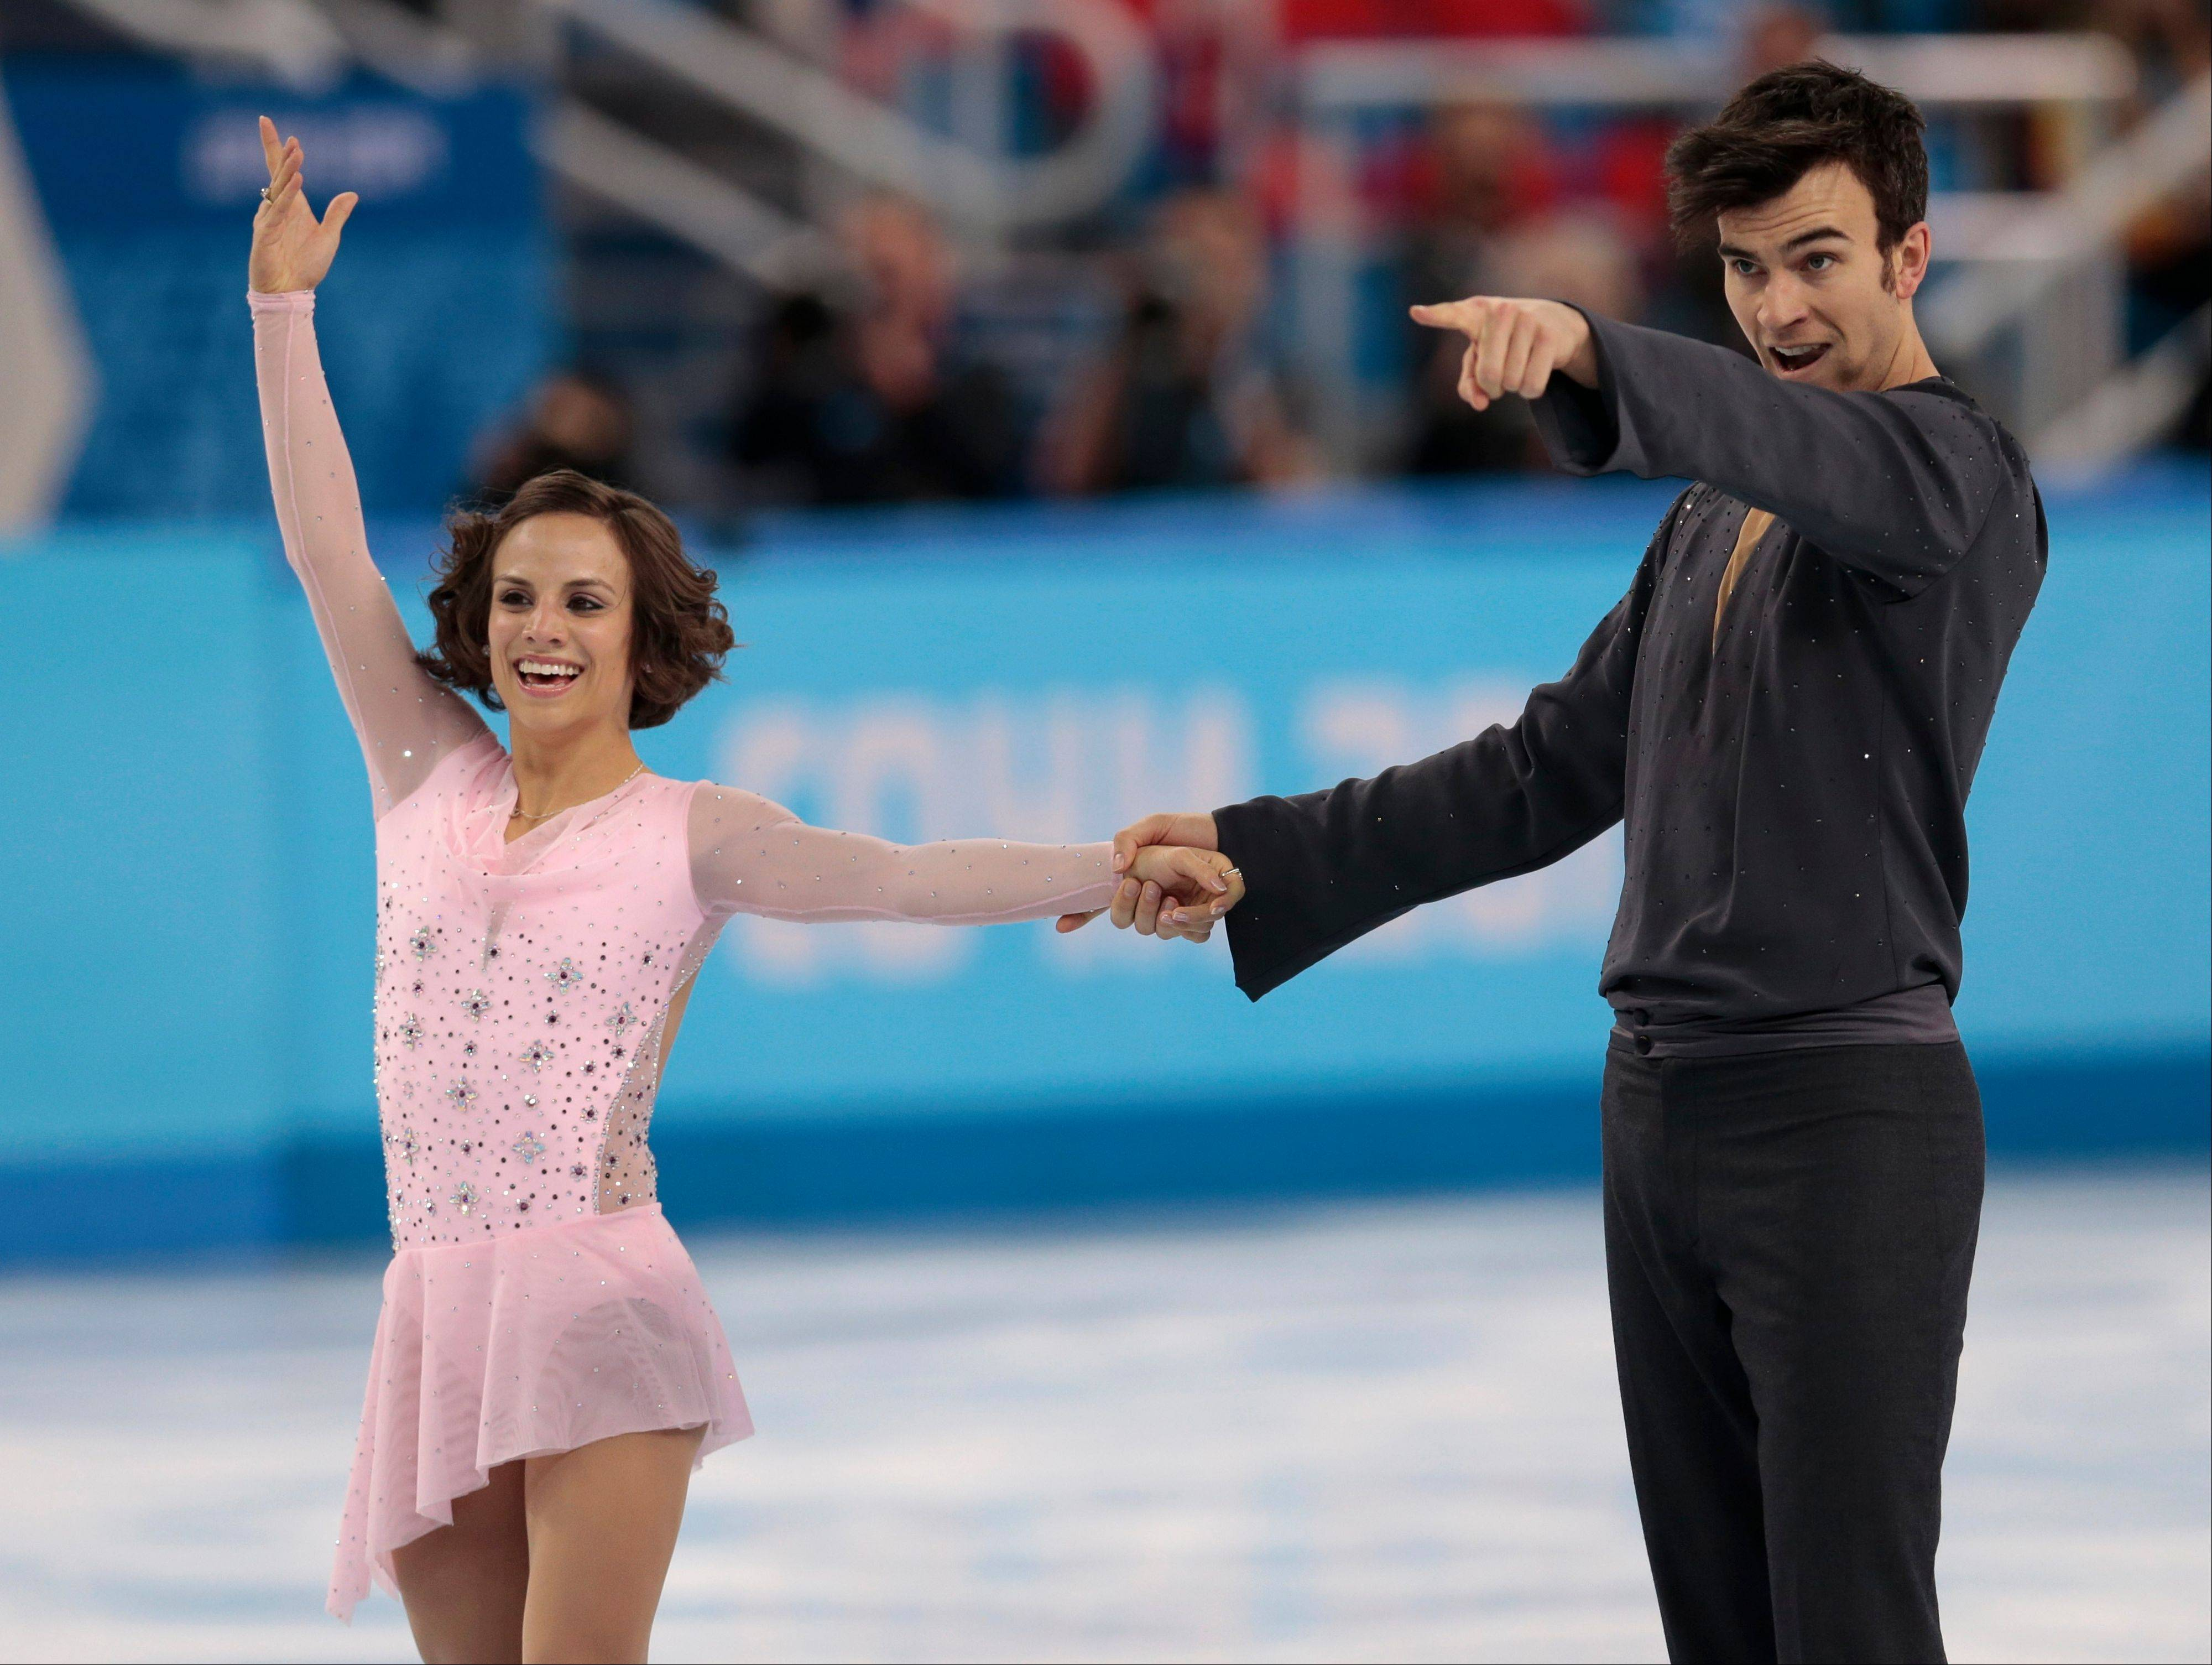 Meagan Duhamel and Eric Radford of Canada gesture after competing in the team pairs short program figure skating competition at the Iceberg Skating Palace during the 2014 Winter Olympics.